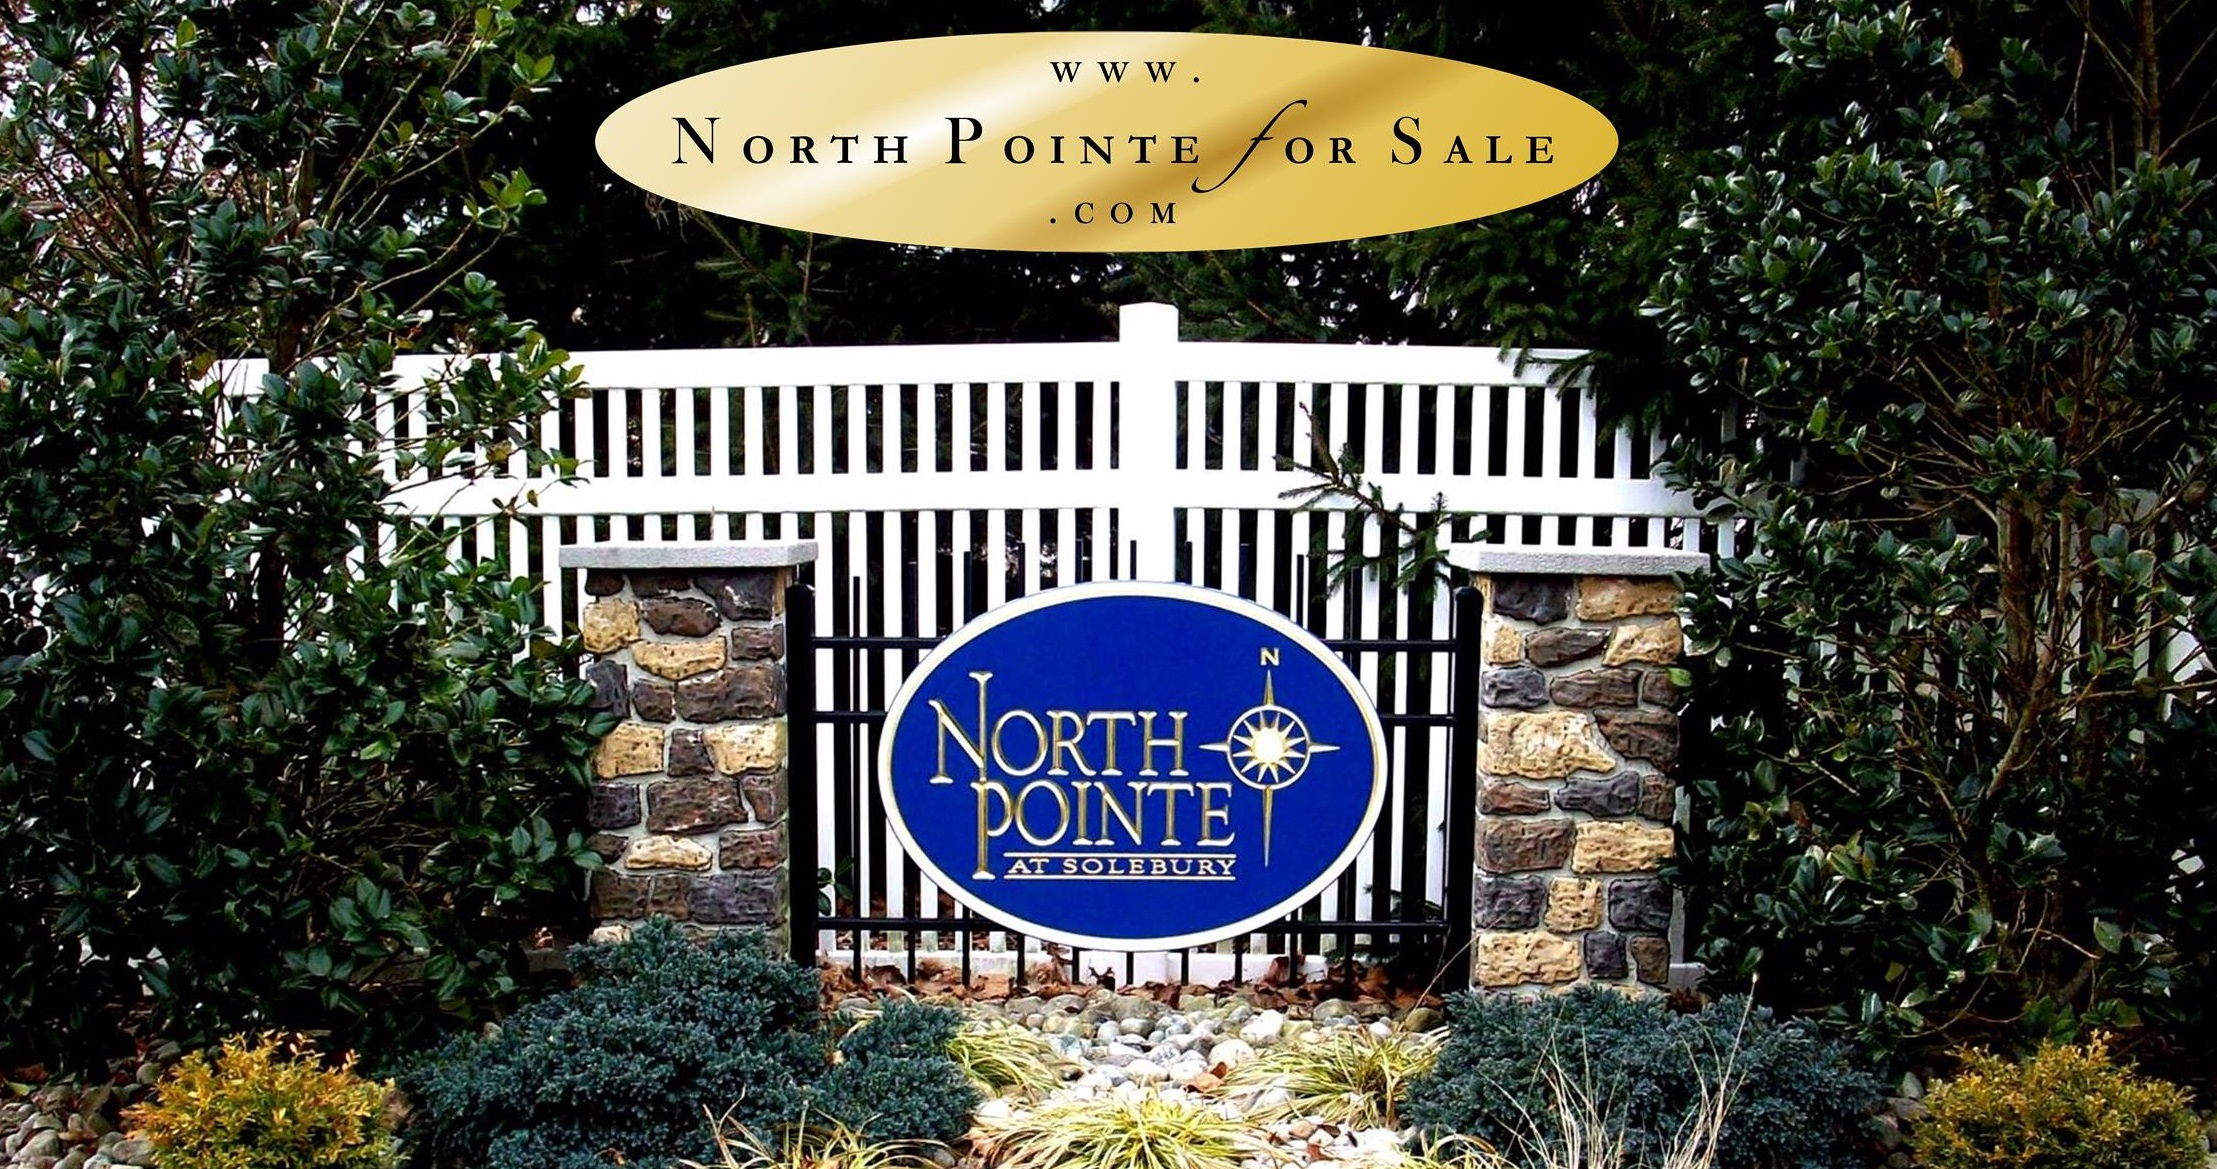 North Pointe for Sale, North Pointe New Hope Pa for Sale, North Pointe Realtor